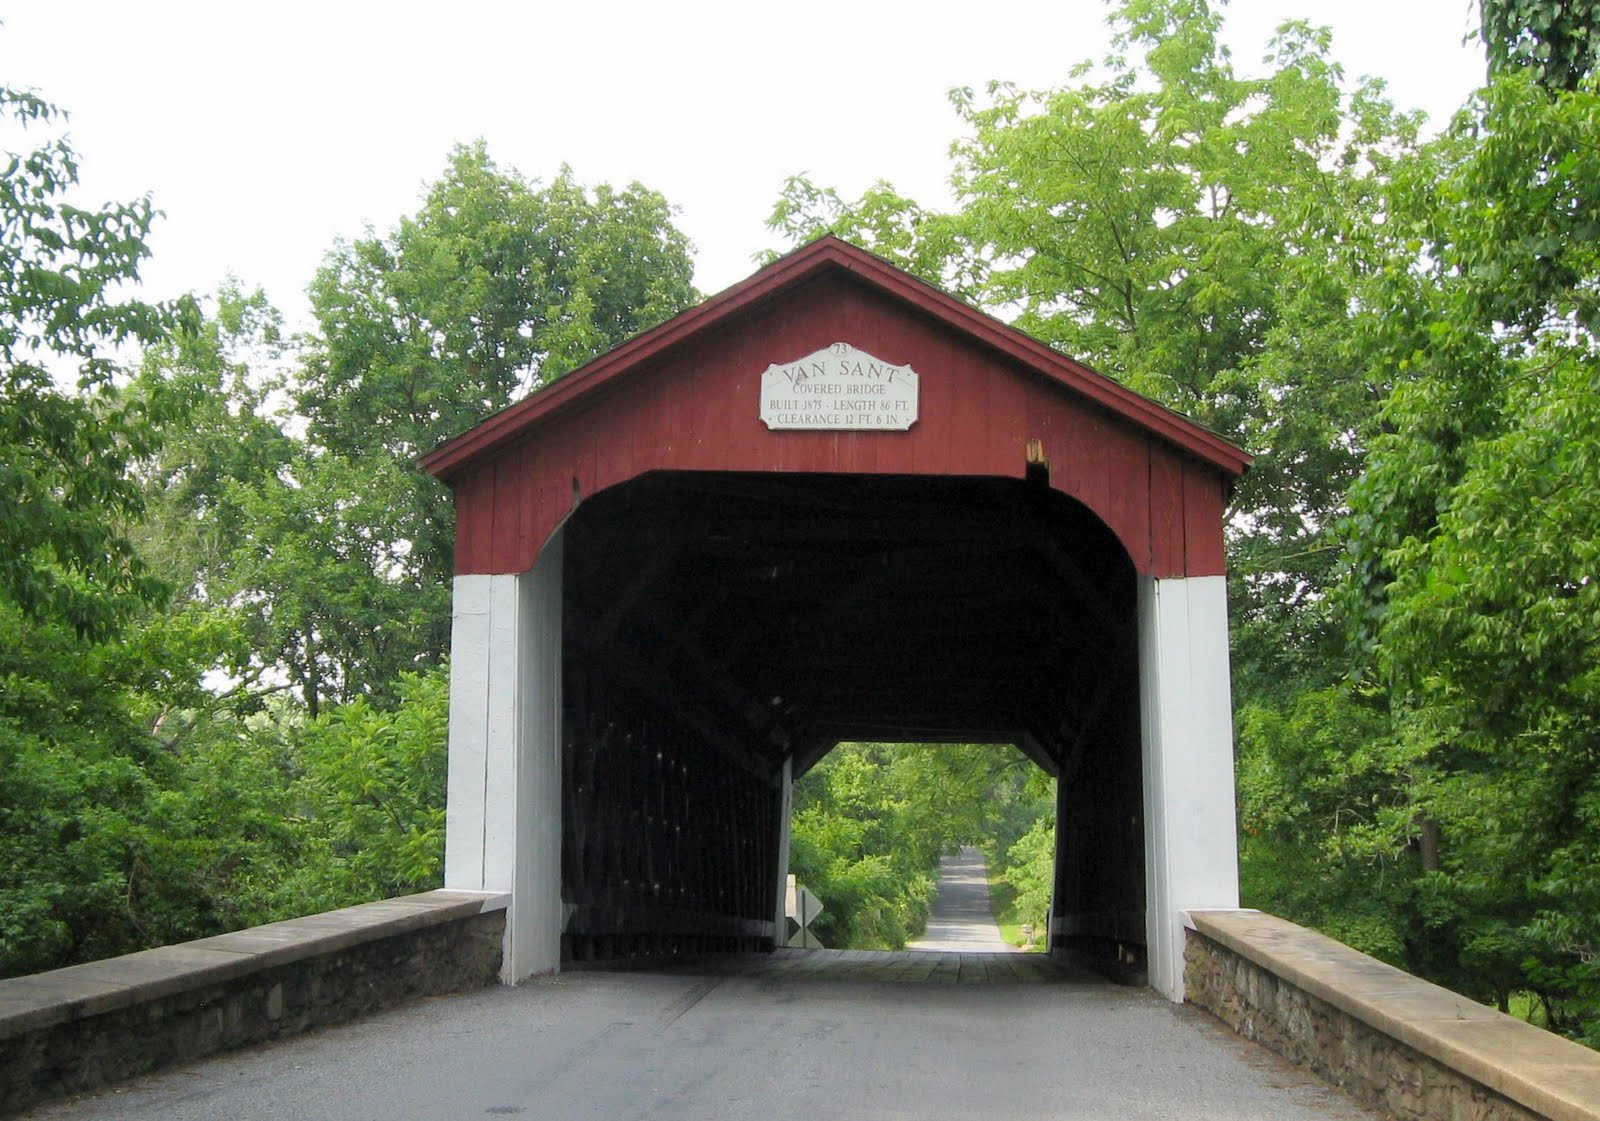 Outta the Way: Haunted VanSant Covered Bridge